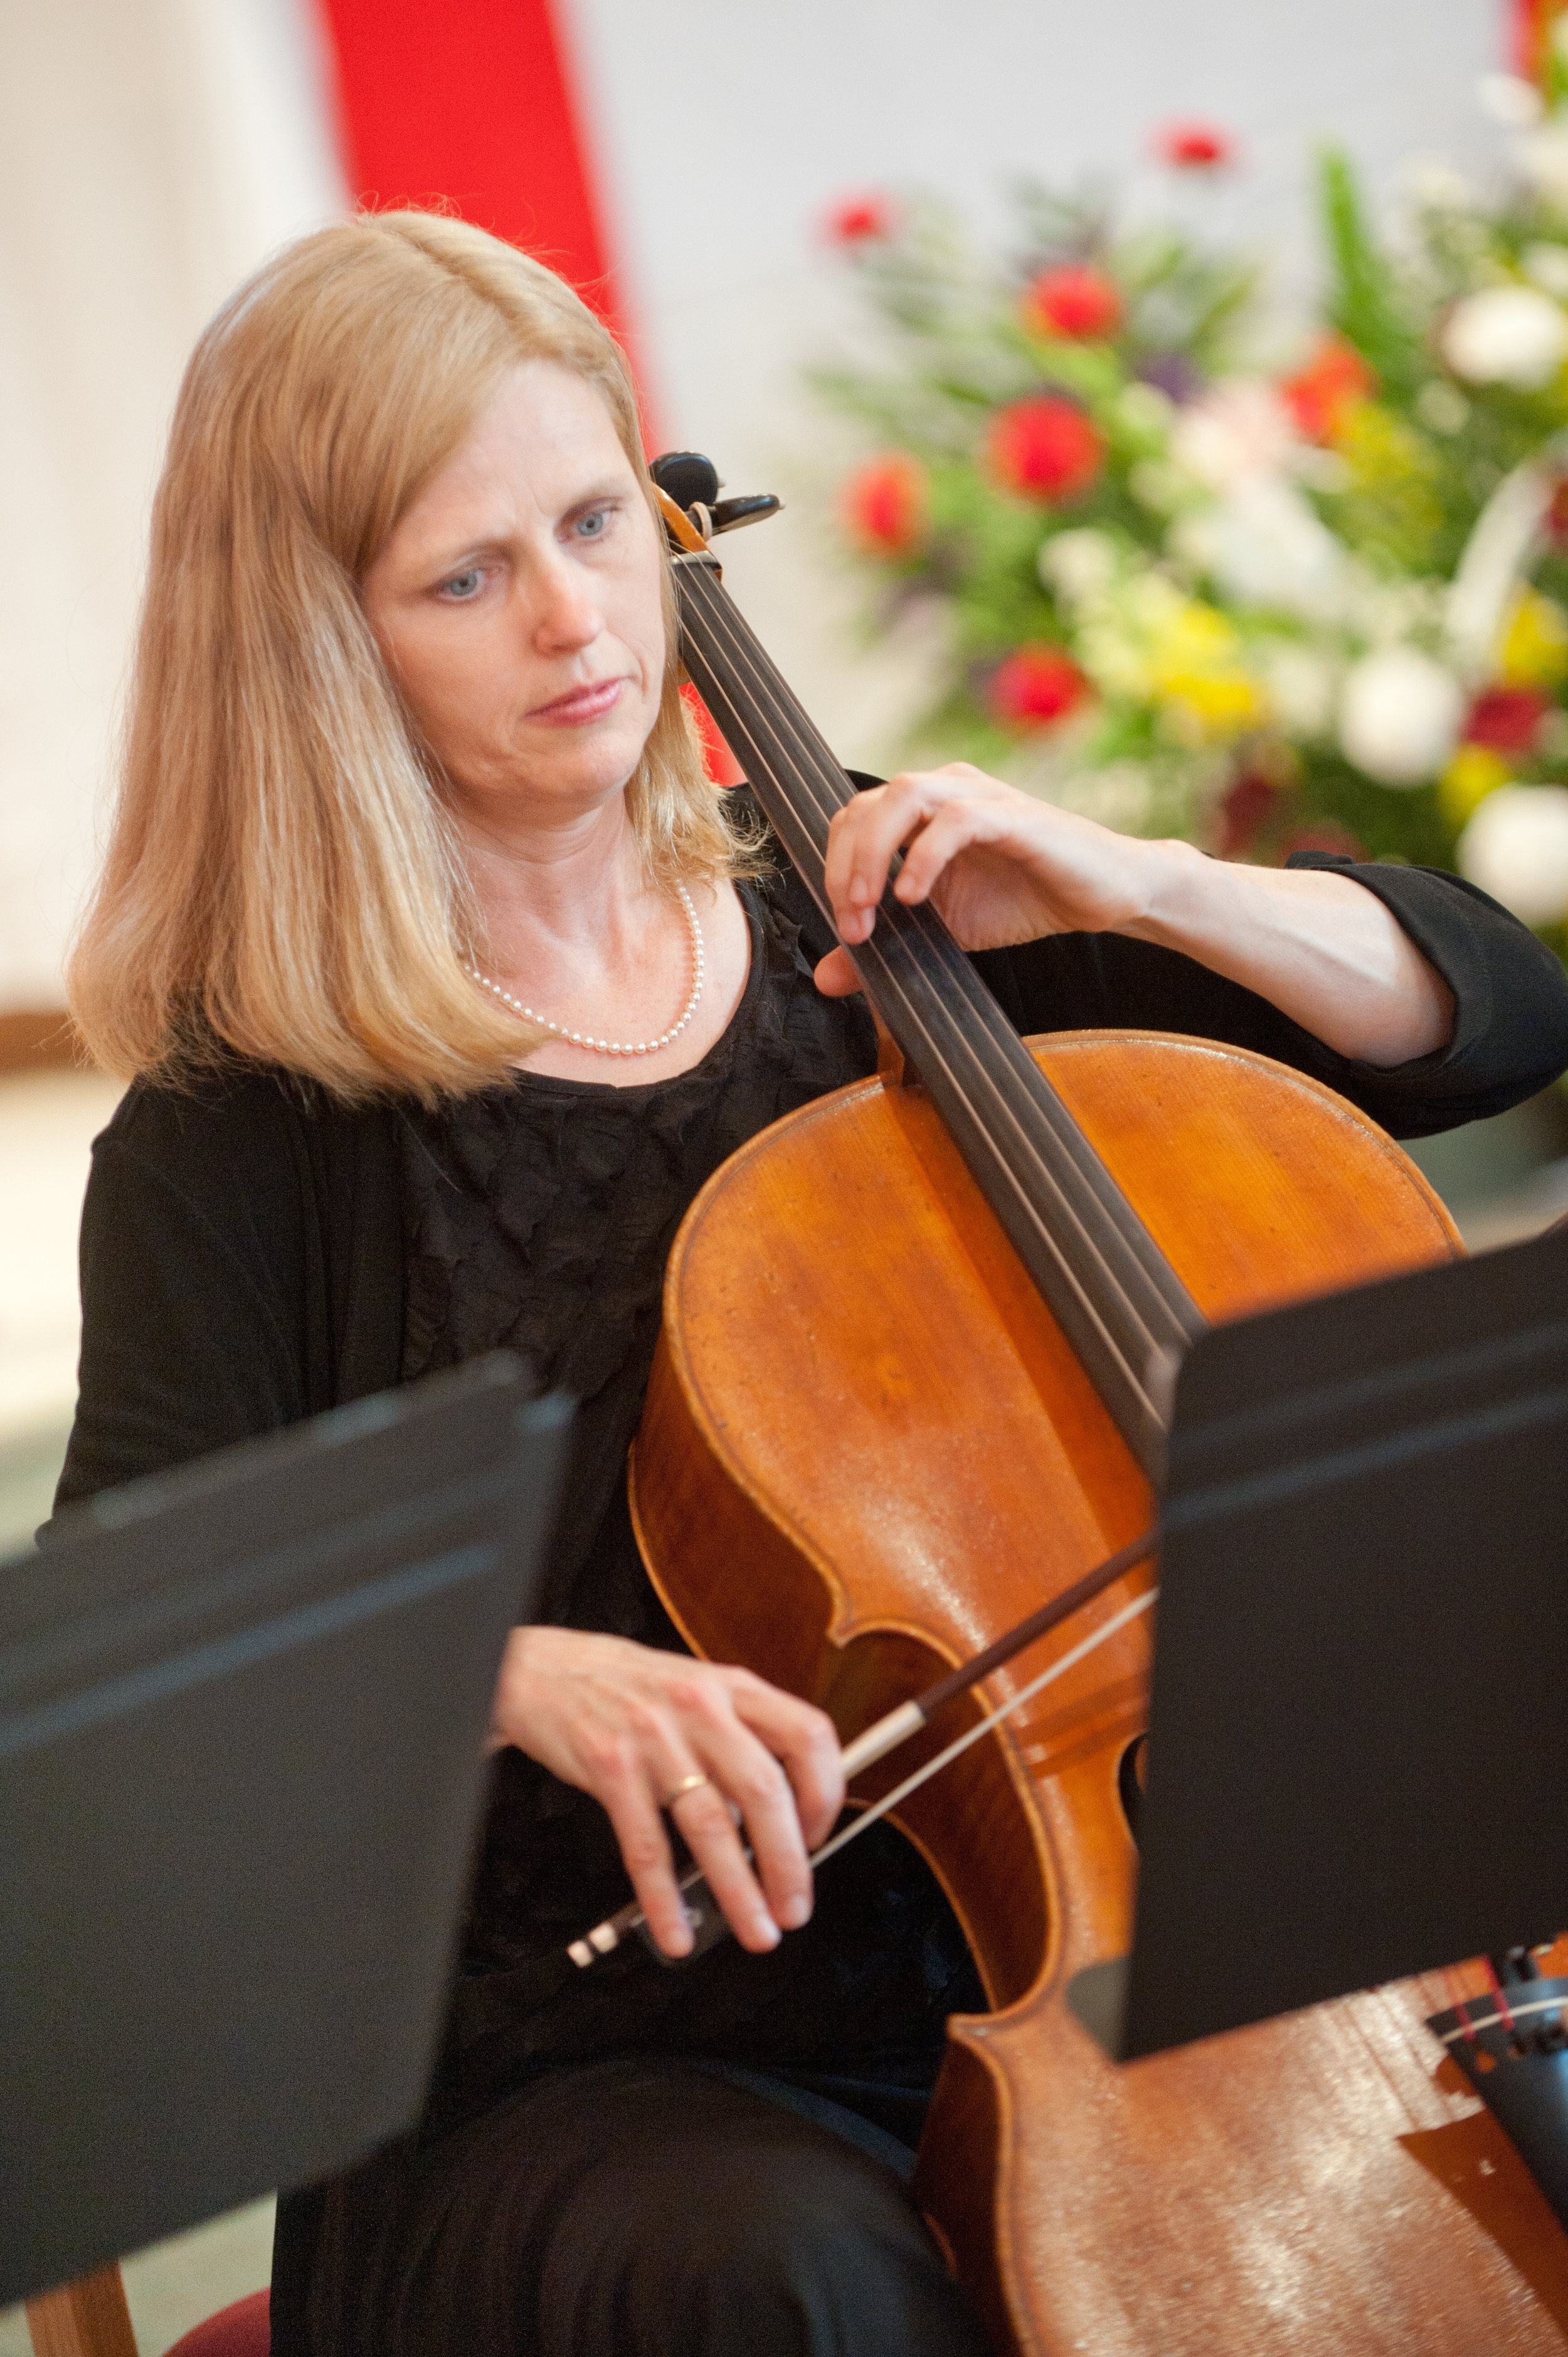 Kathy playing cello at a church event